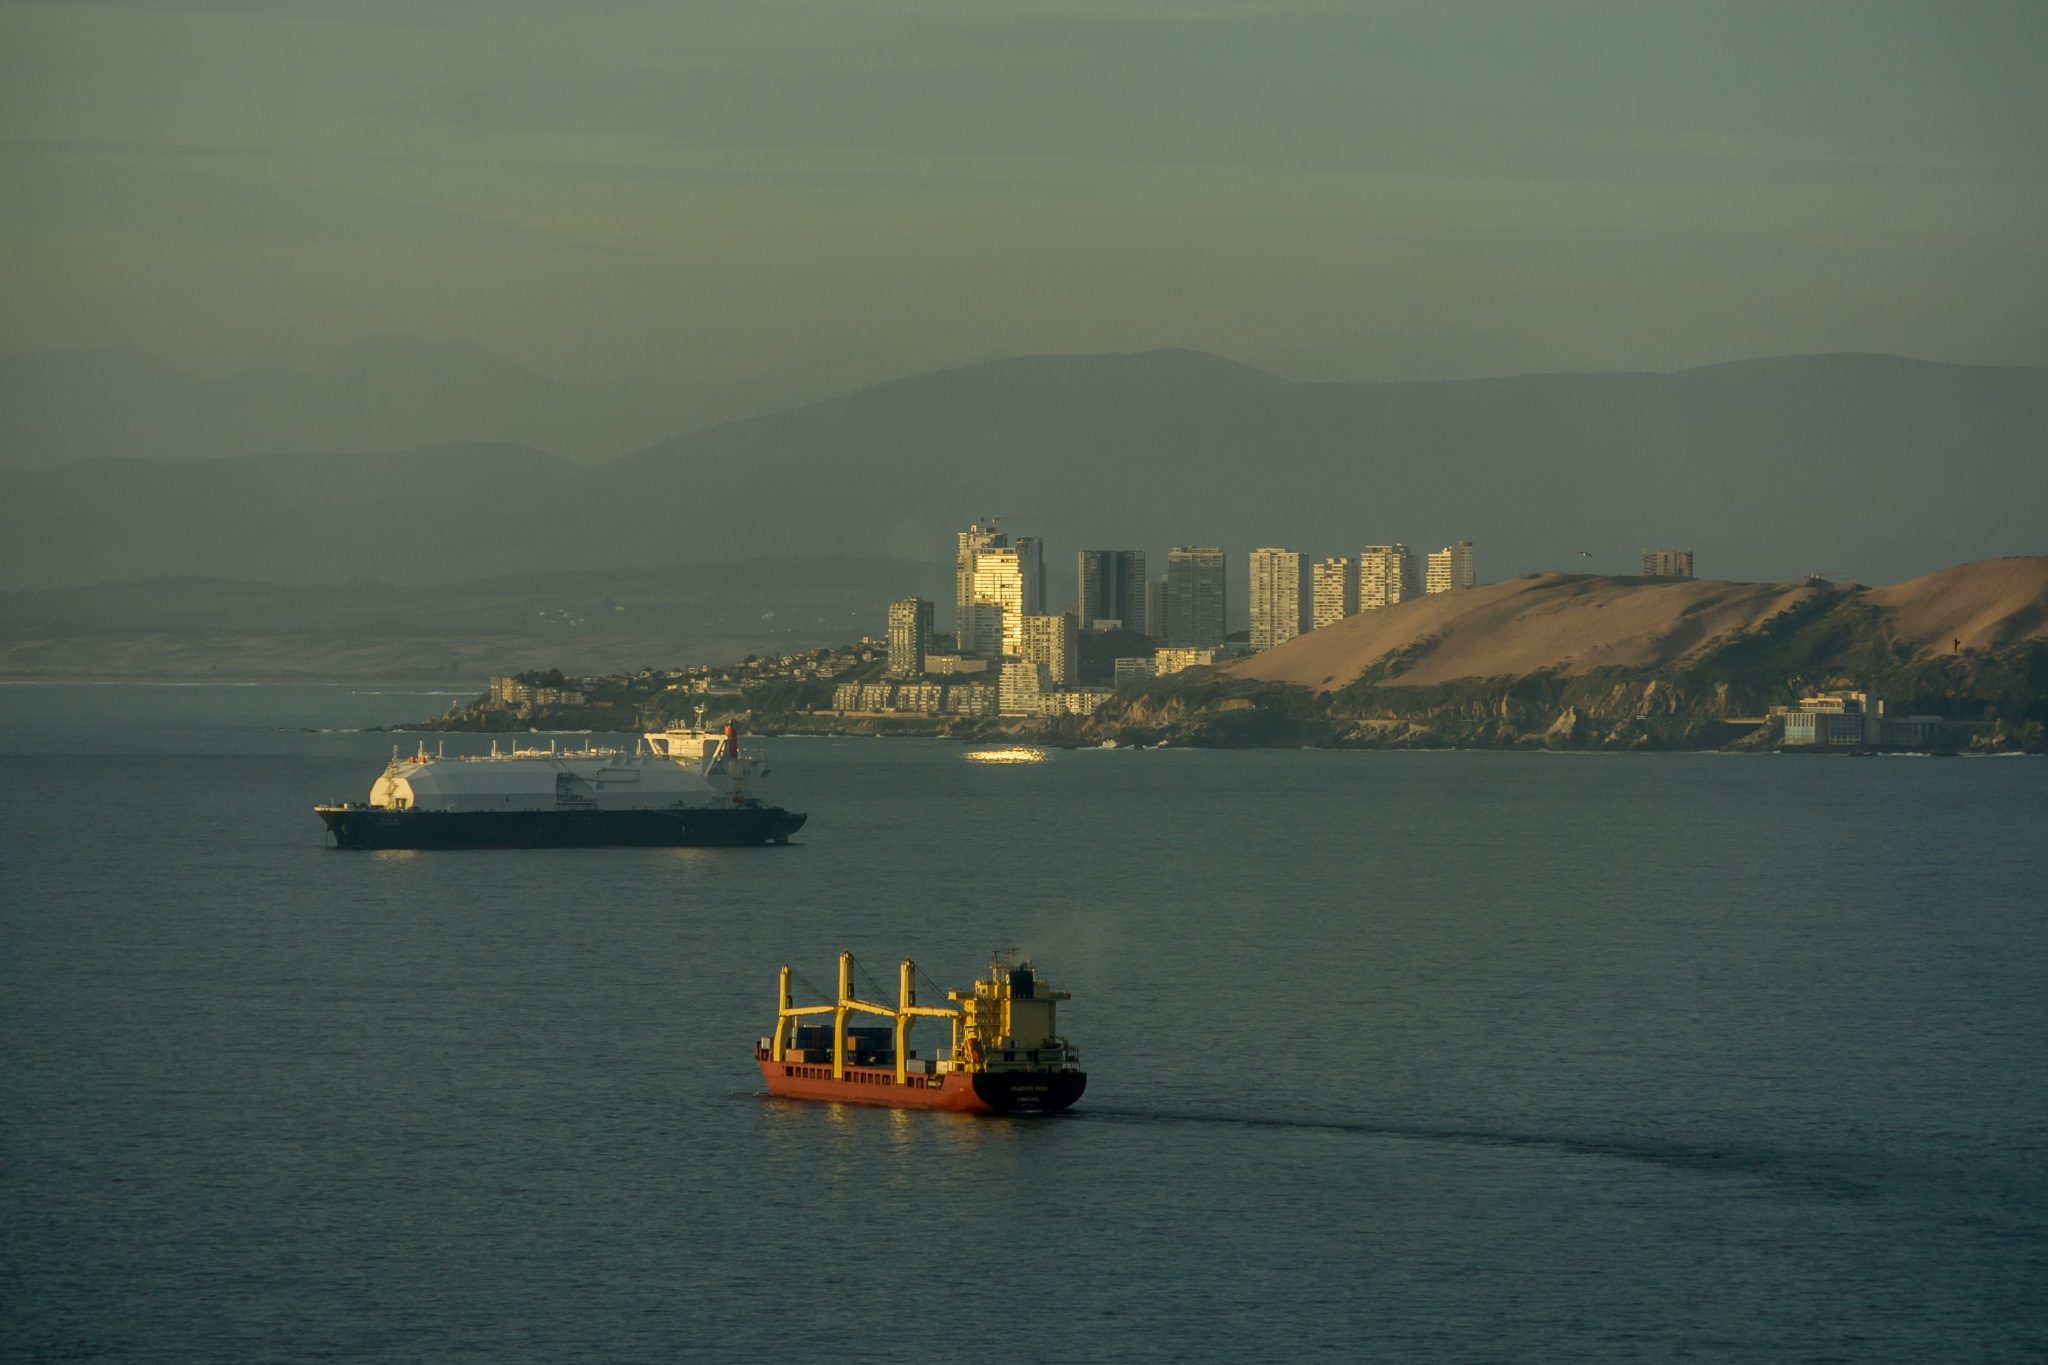 ships in the bay of Valparaiso by Daniel M.